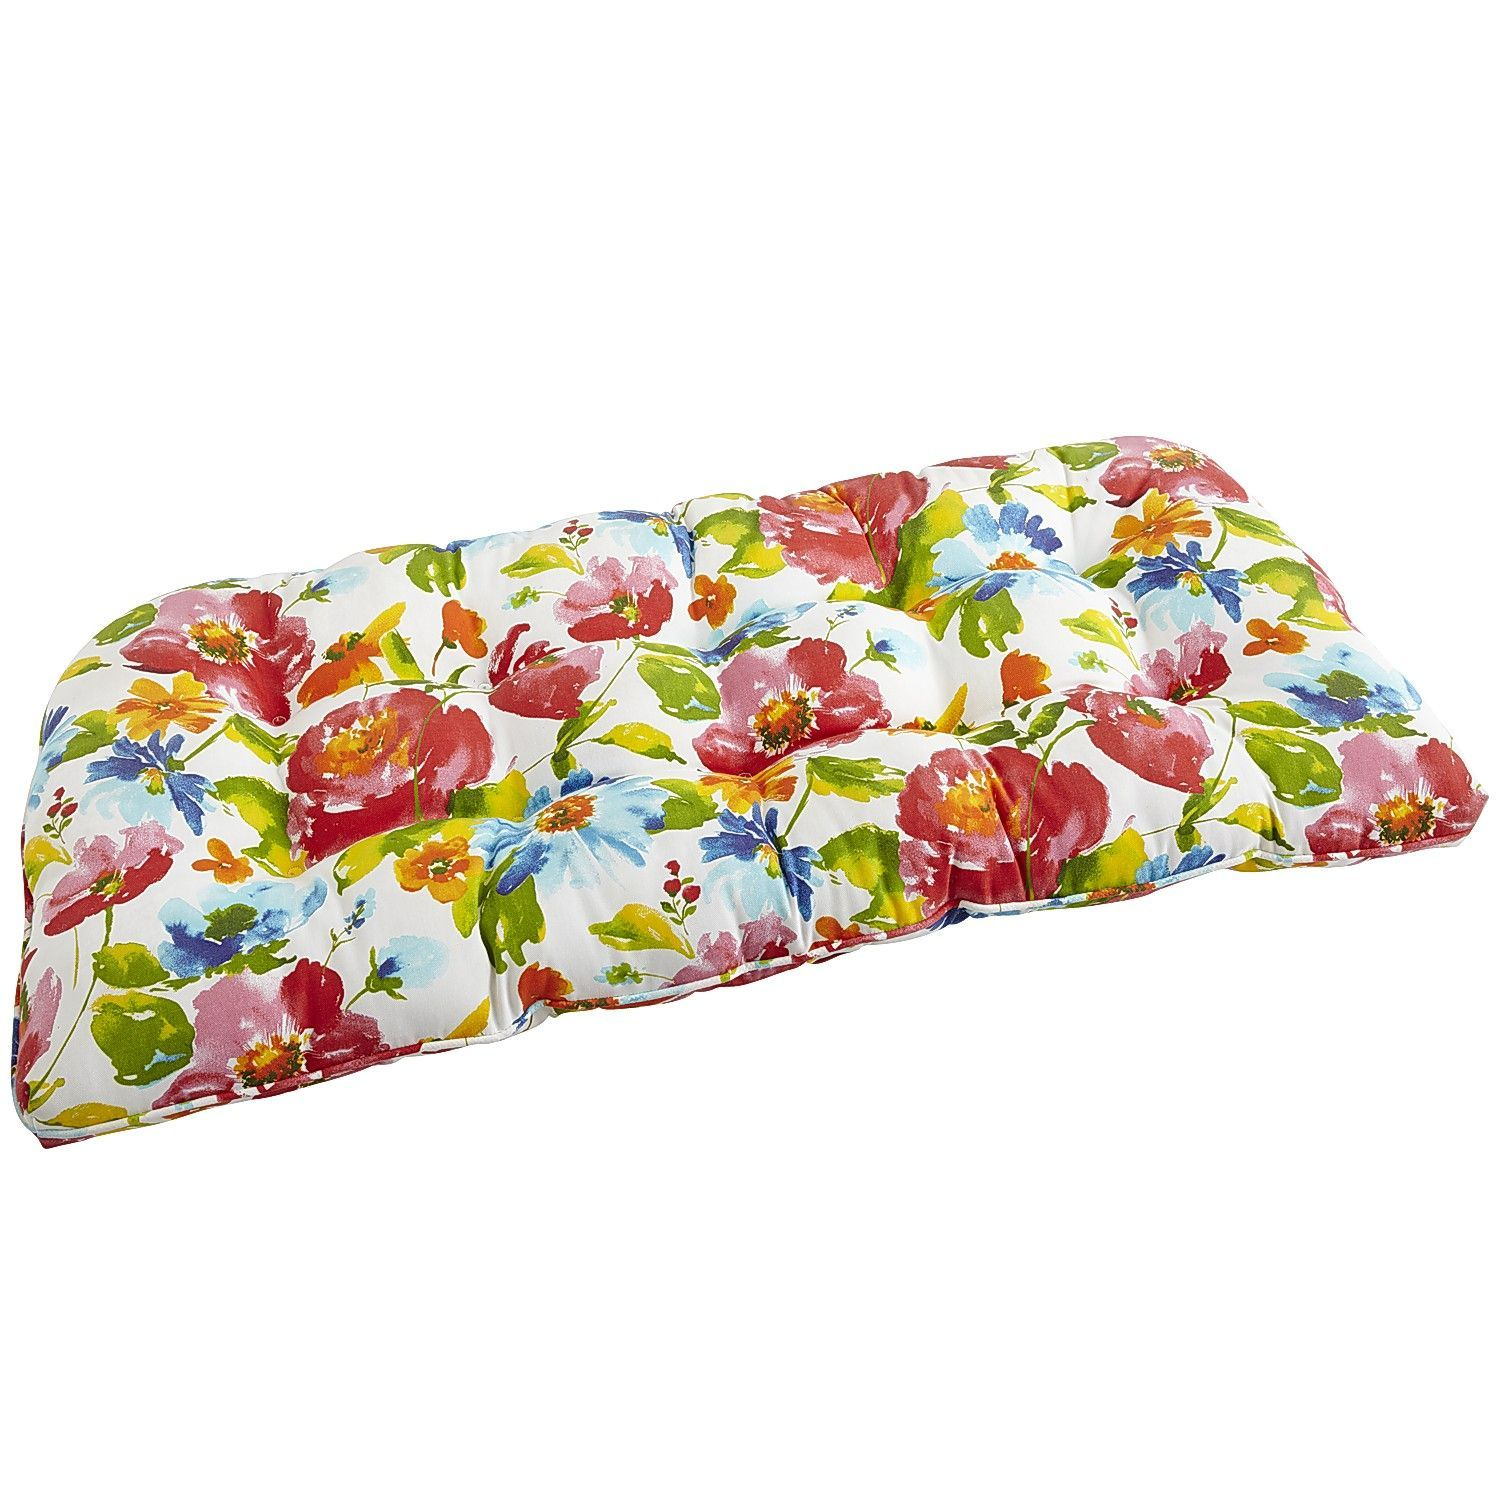 20 floral outdoor bench cushions ideas